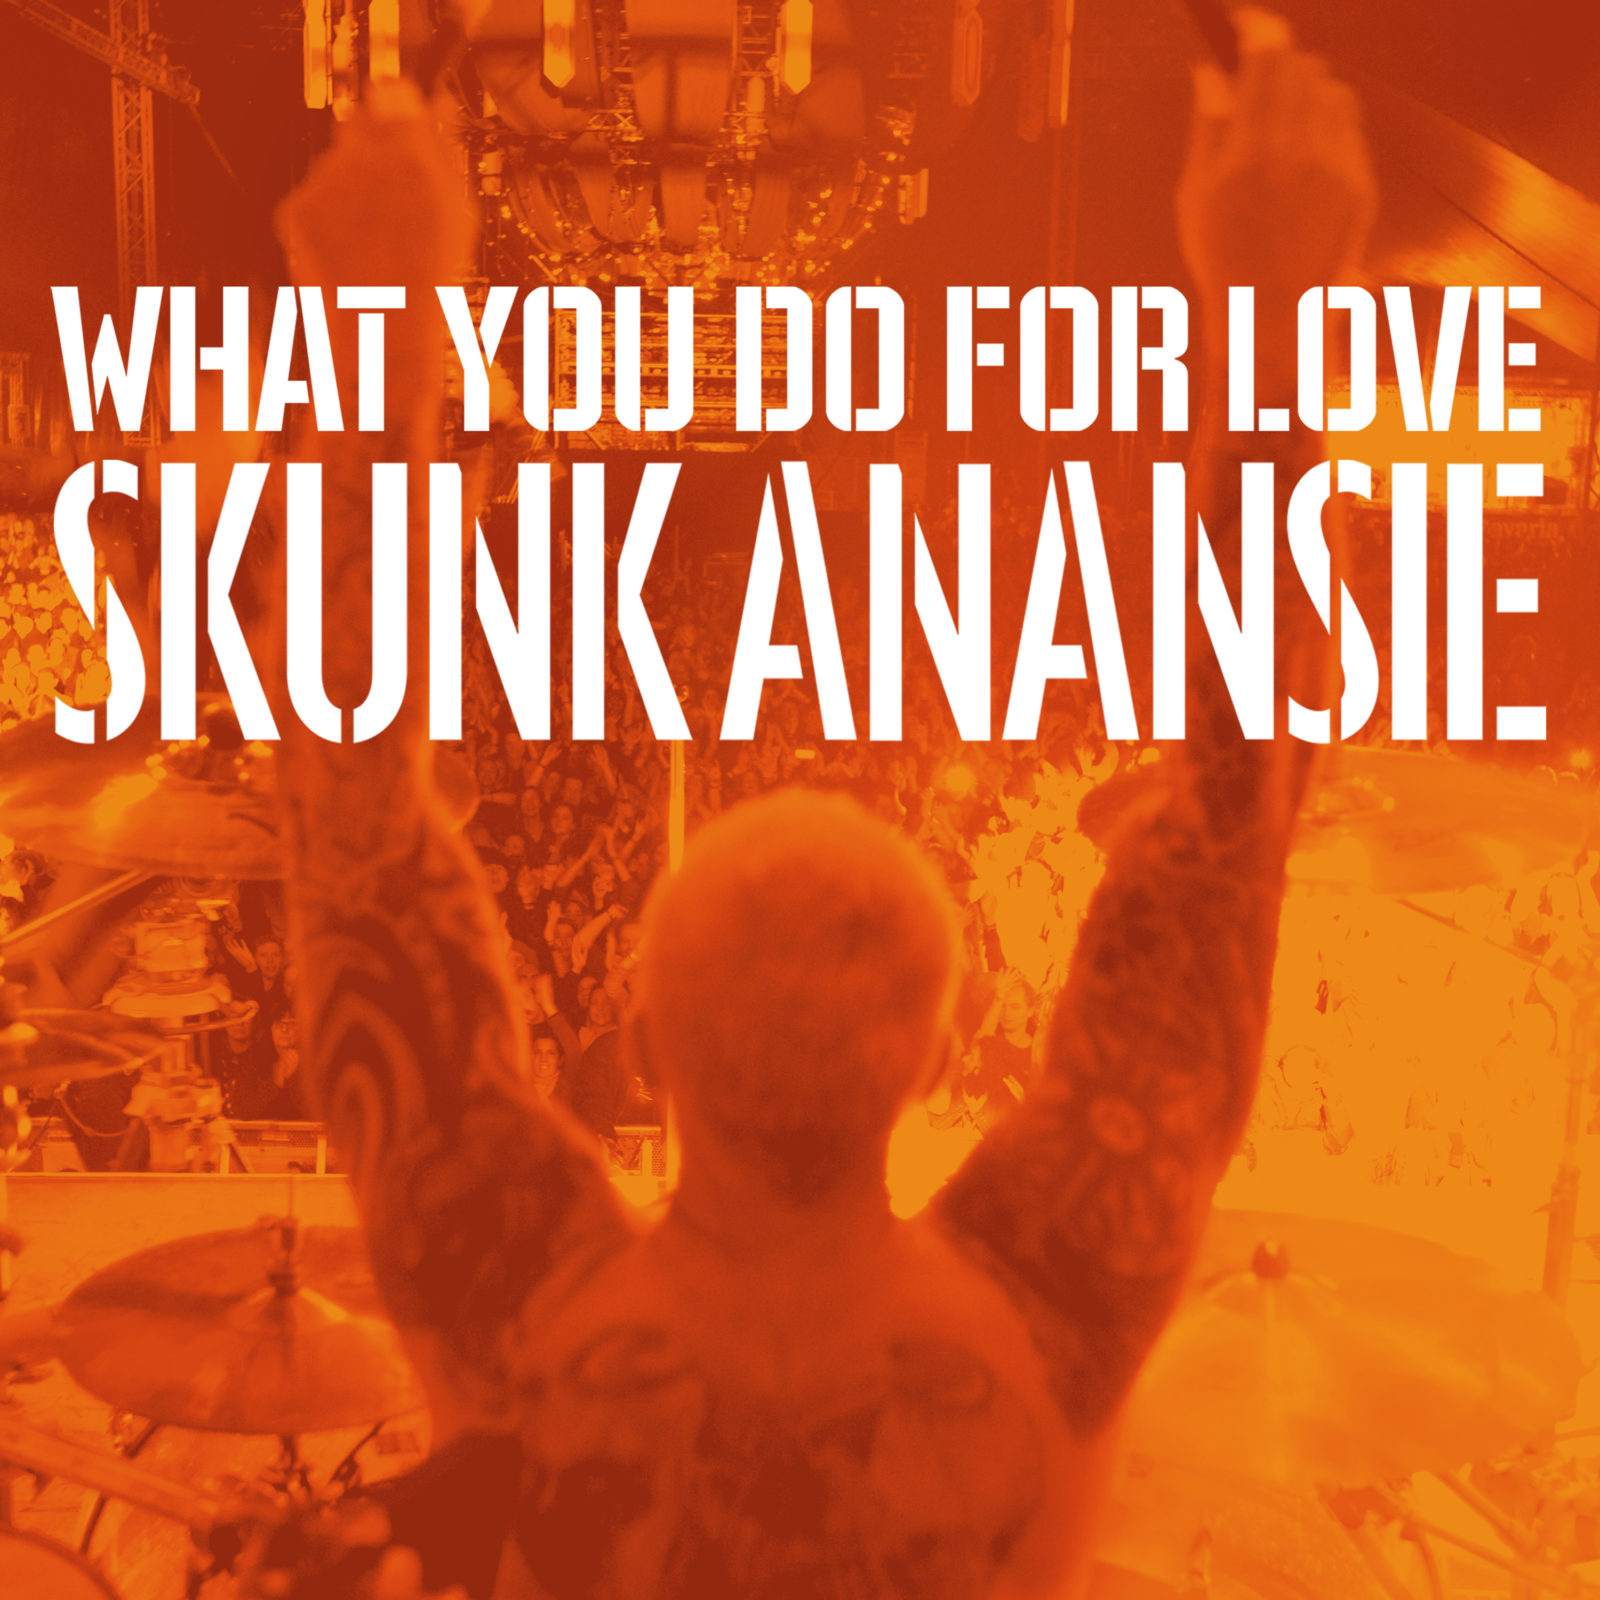 Skunk Anansie - What you do for love